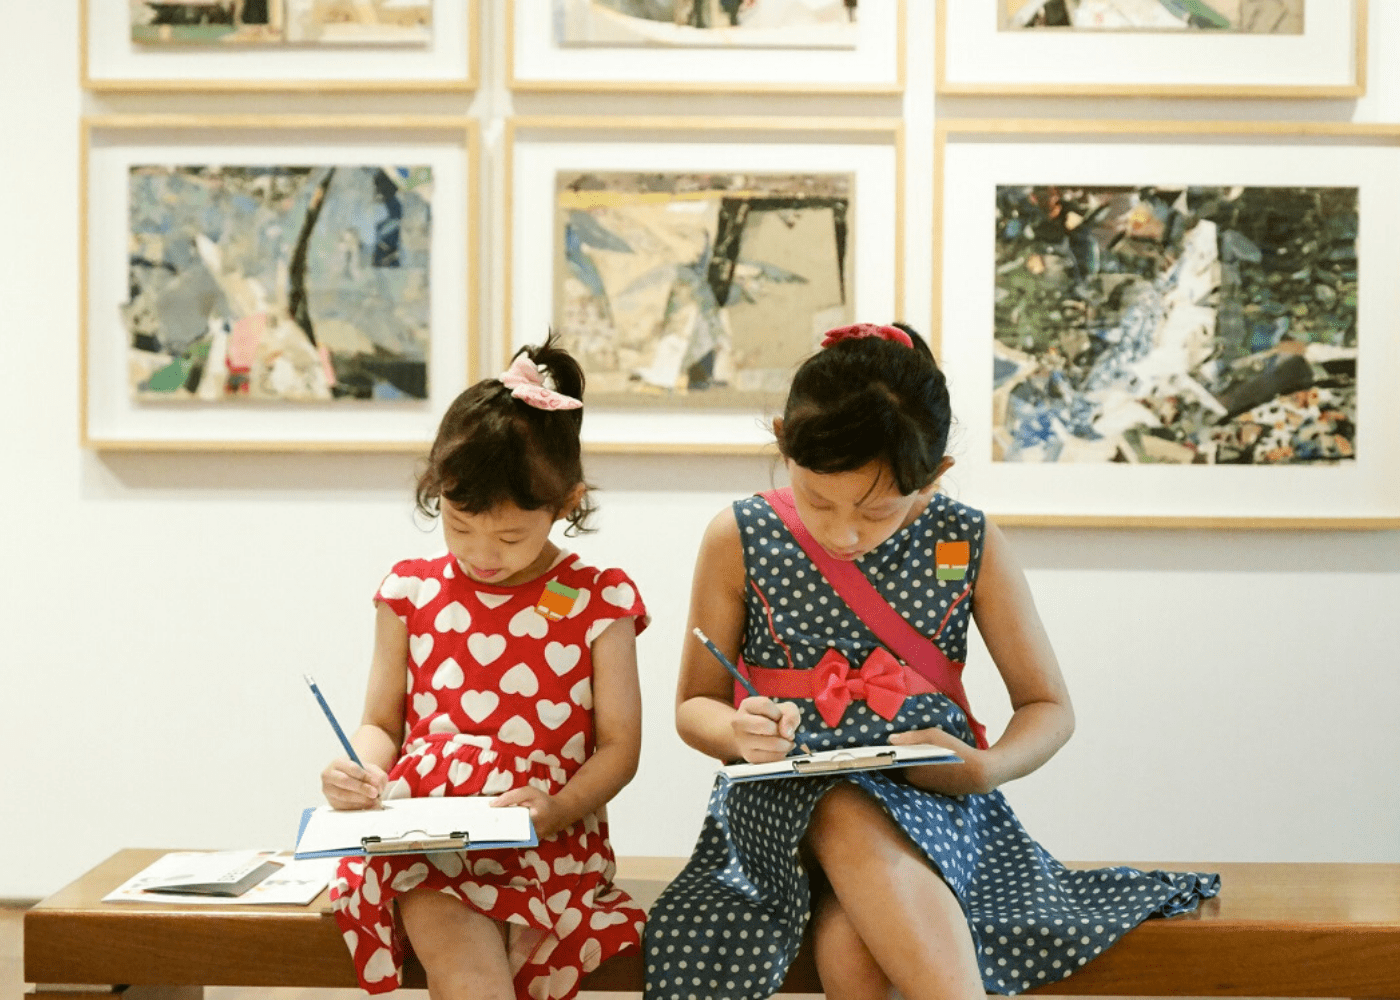 national gallery annual family memberships | Annual memberships in Singapore worth getting